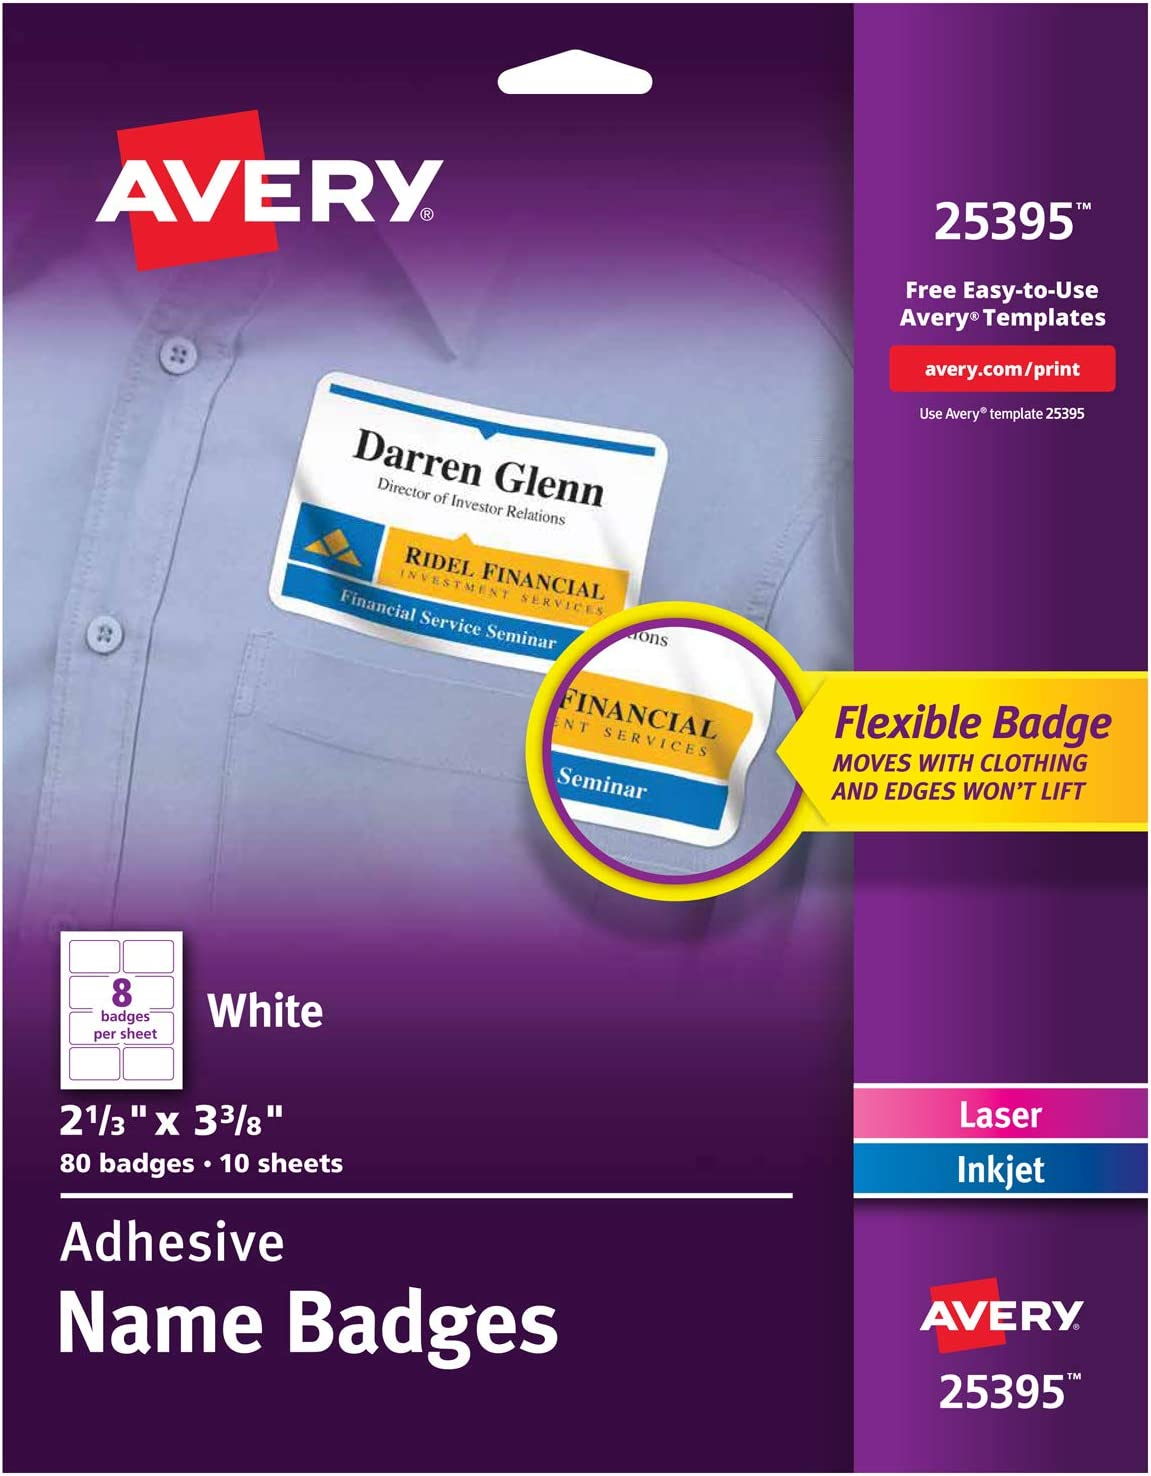 Avery Premium Personalized Name Tags Print Or Write 2 1 3 X 3 3 8 80 Adhesive Tags 25395 White